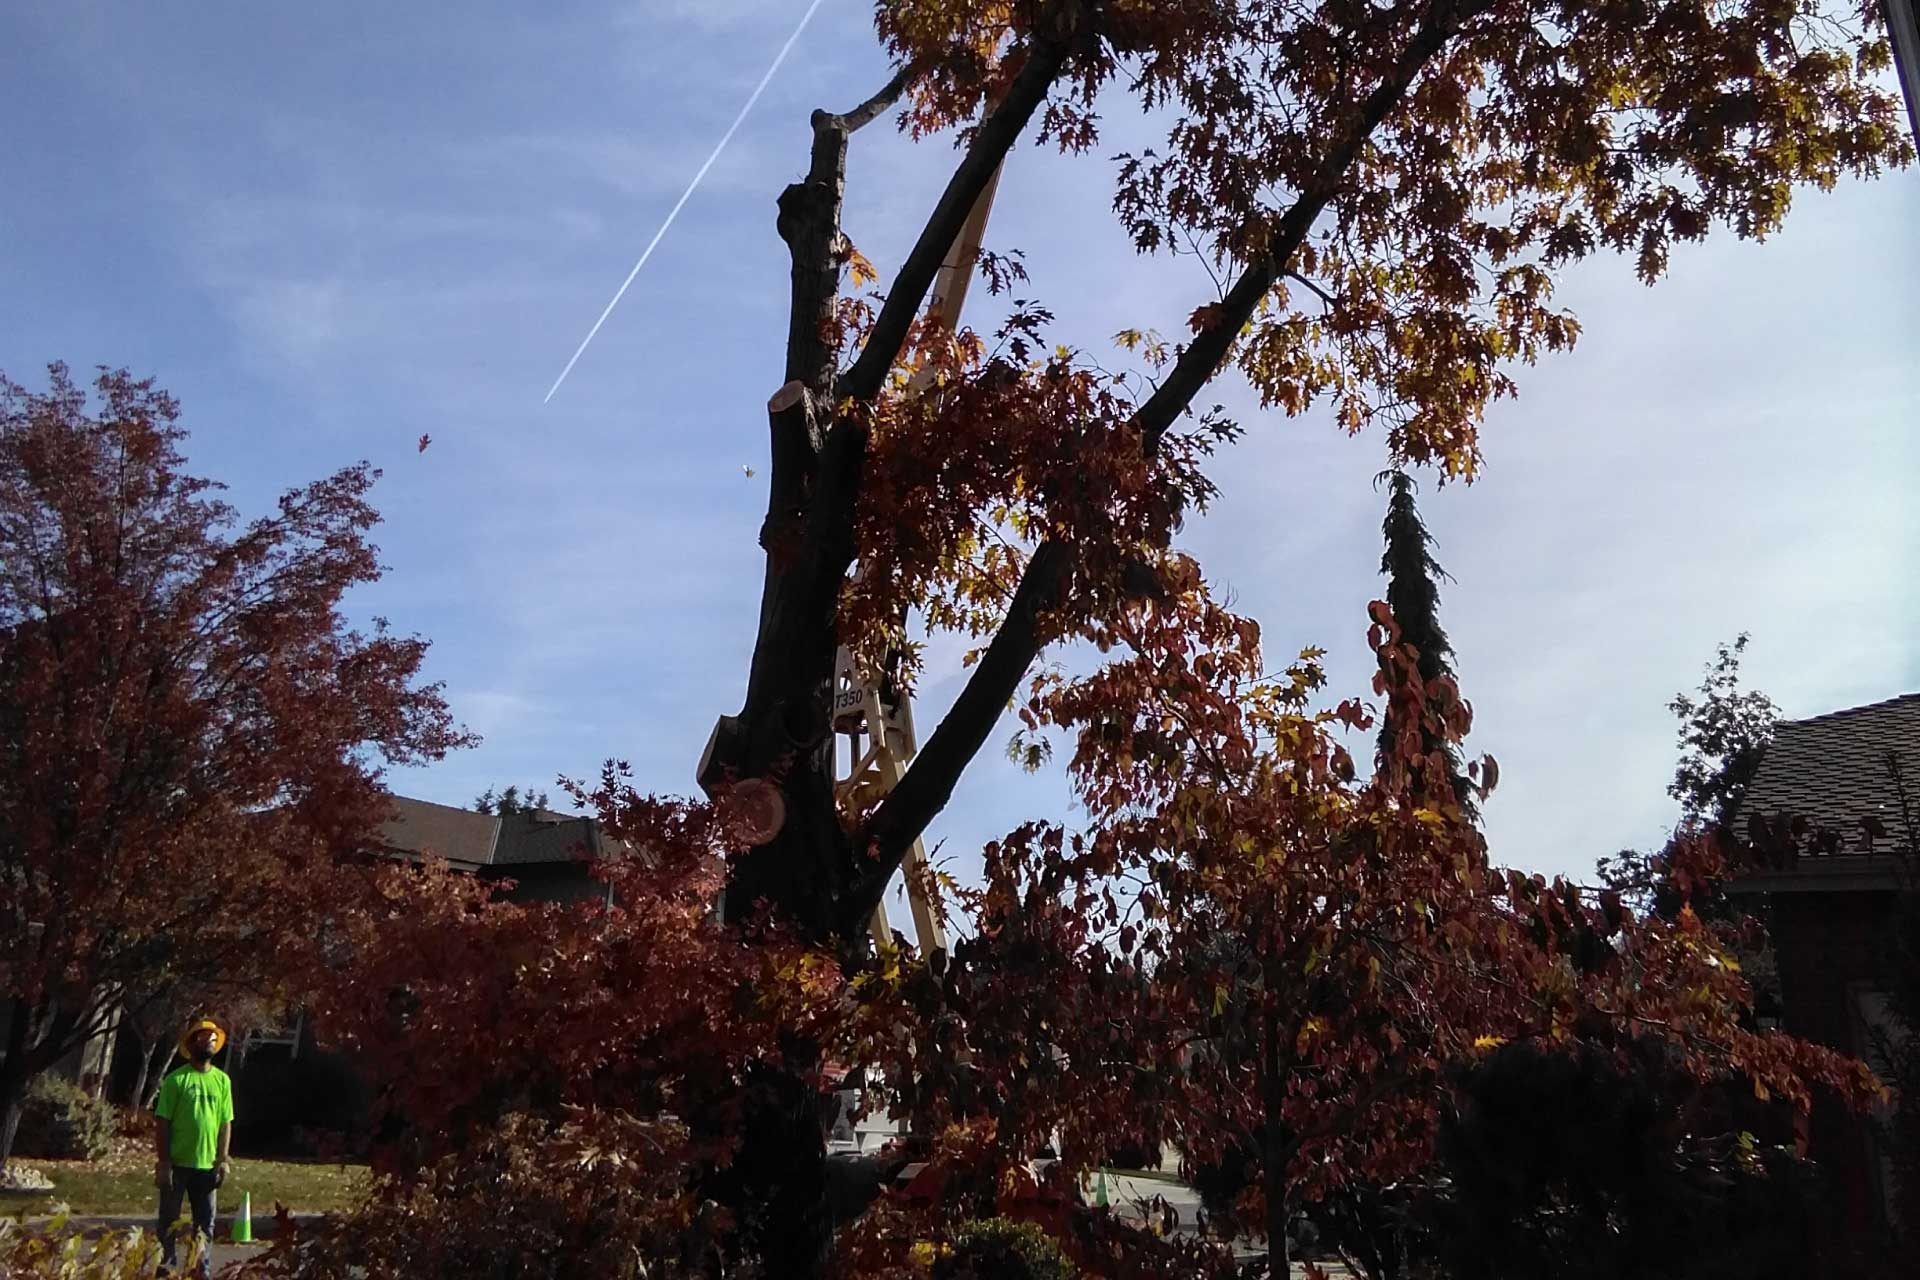 Tree removal and landscape reduction in Boise, Idaho